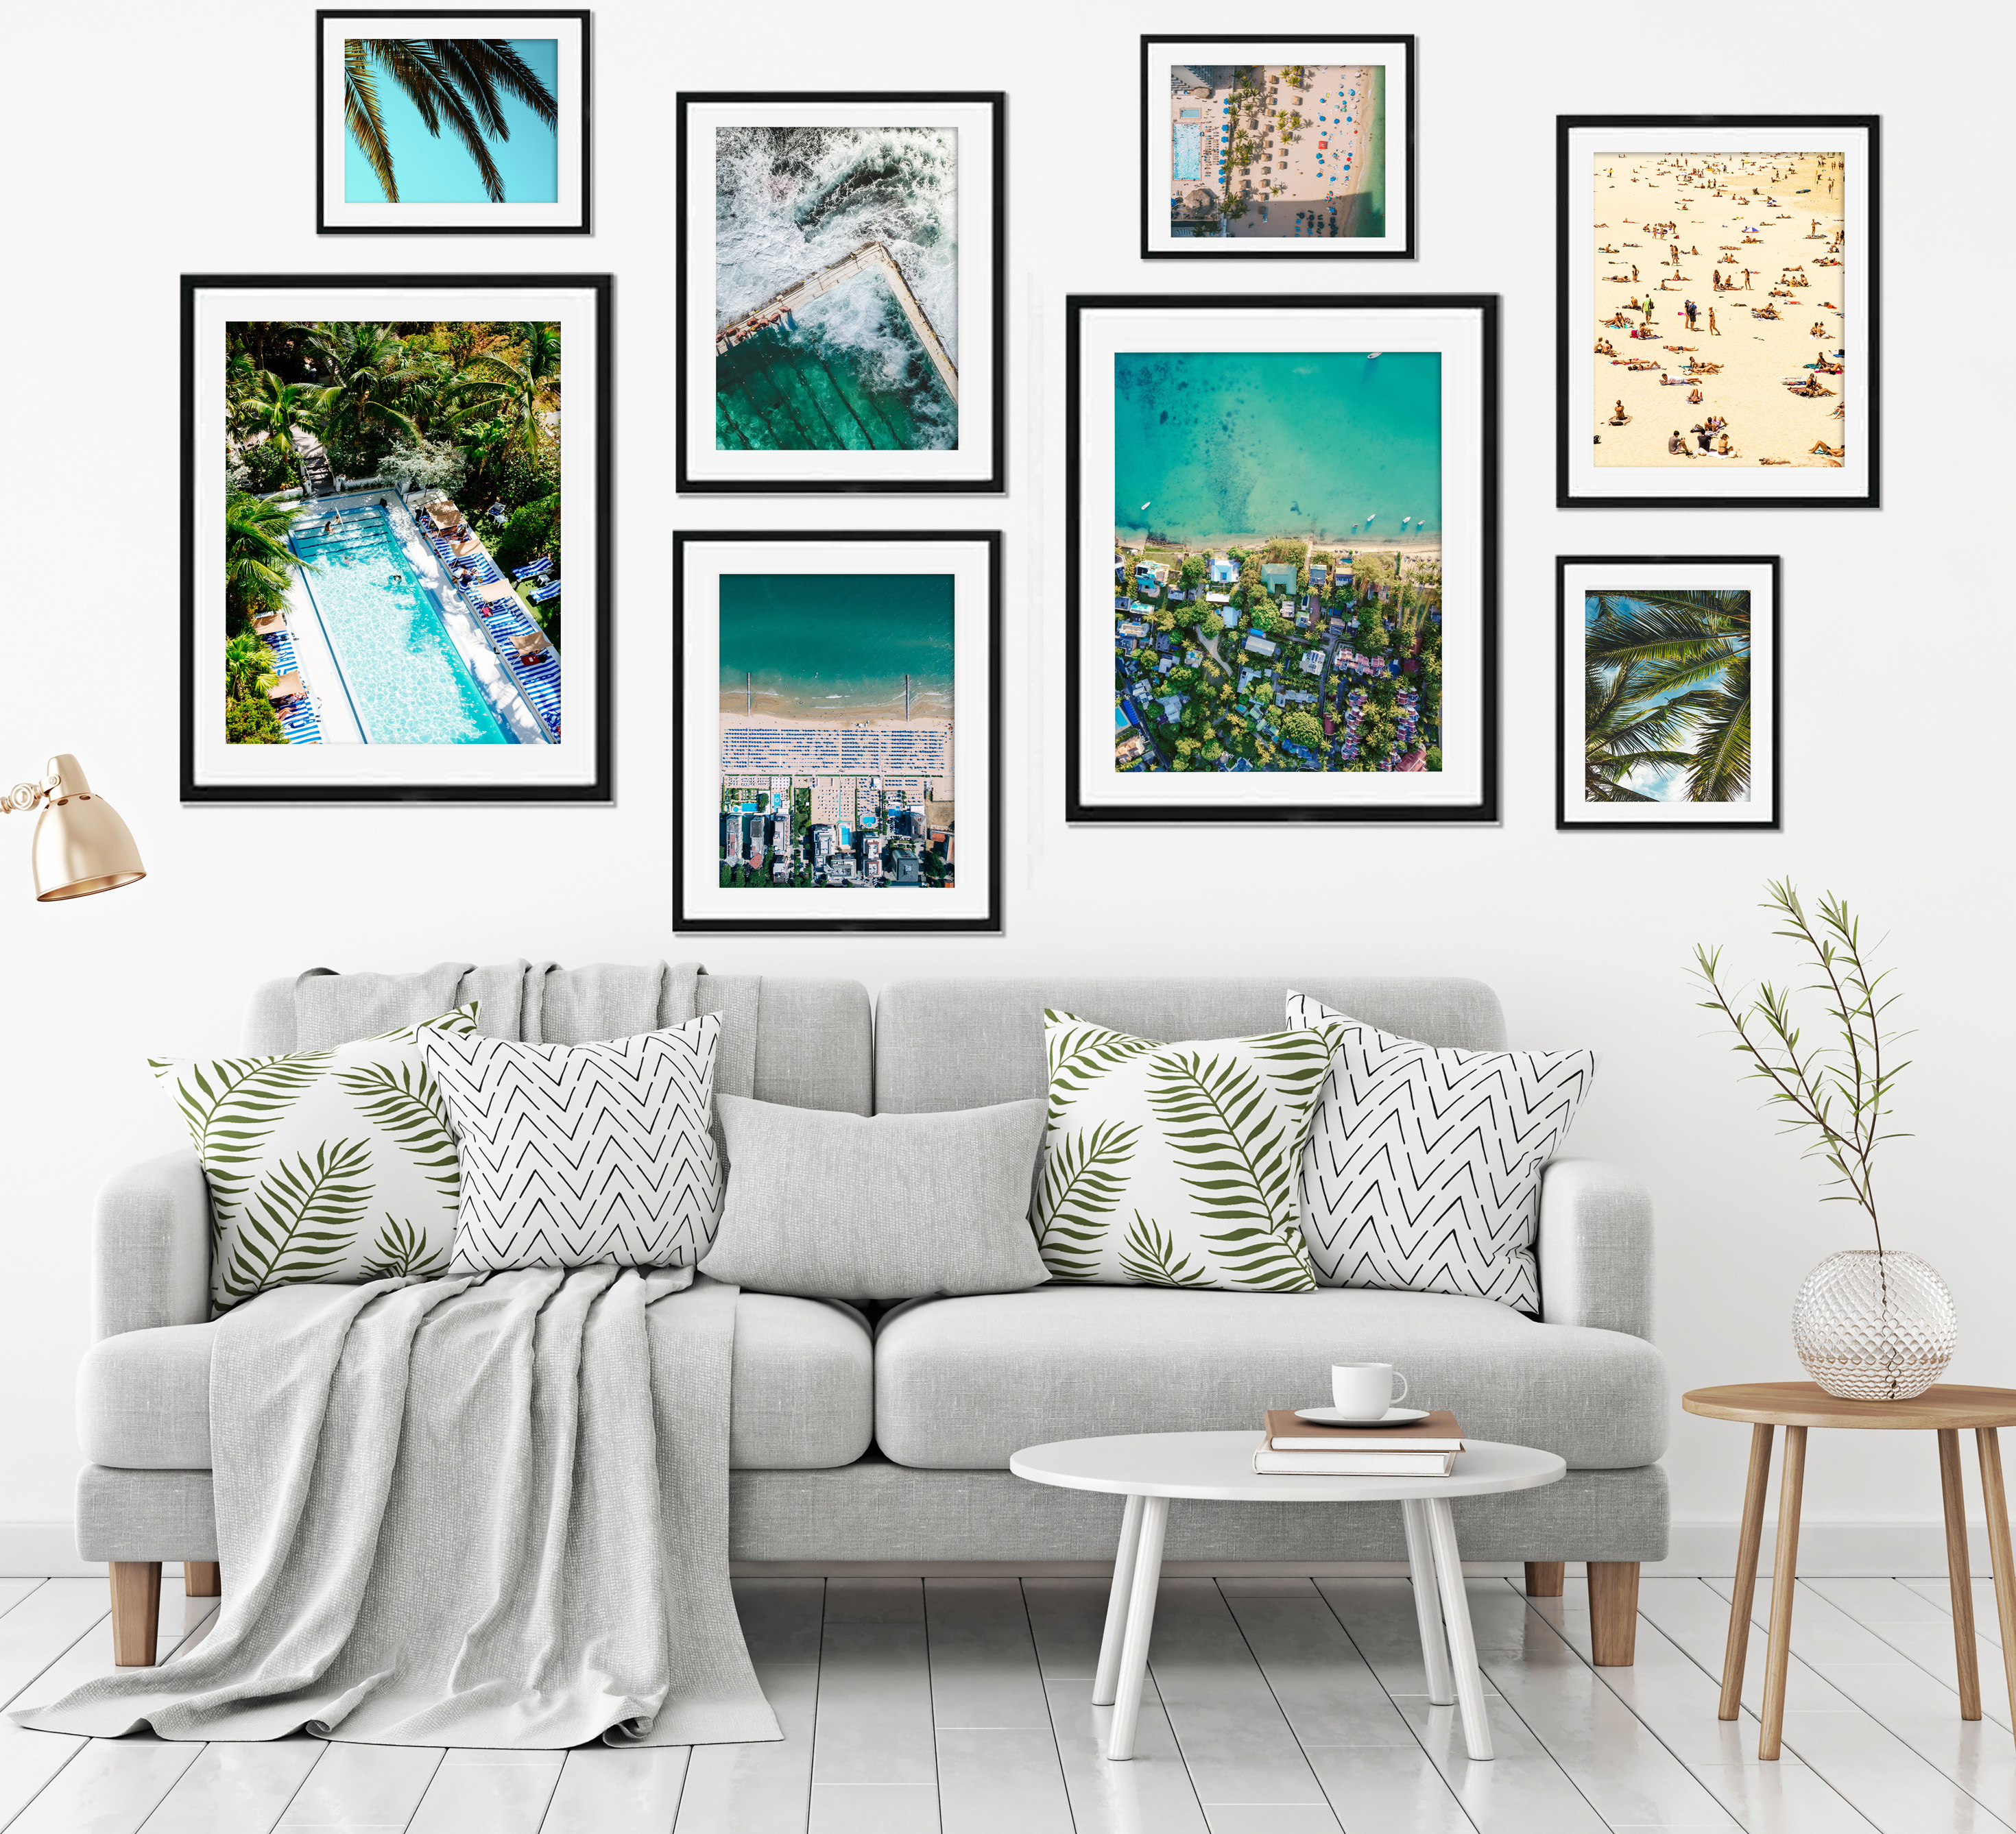 Tropical Paradise, Wall Art Print Set of 8, £99.95, Abstract House (Abstract House/PA)